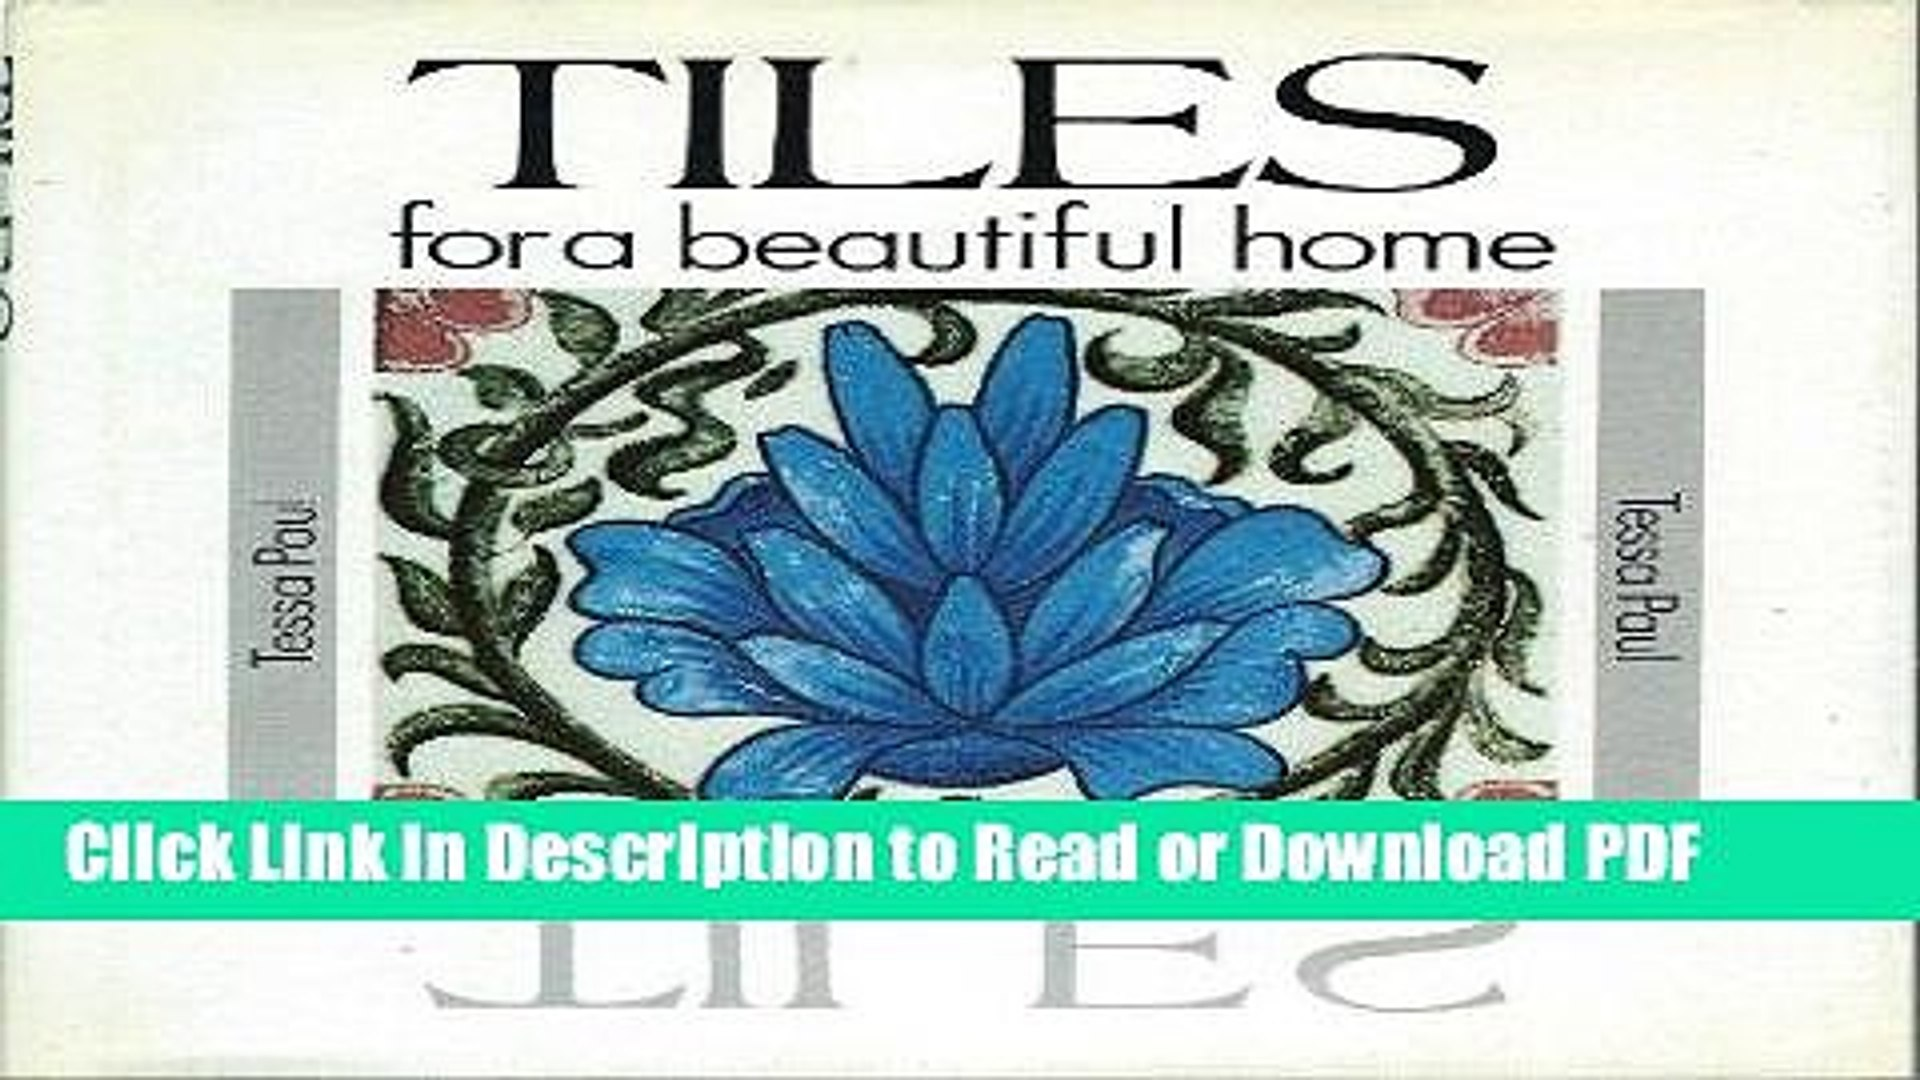 Read Tiles for a Beautiful Home (Beautiful Homes Series) Book Online